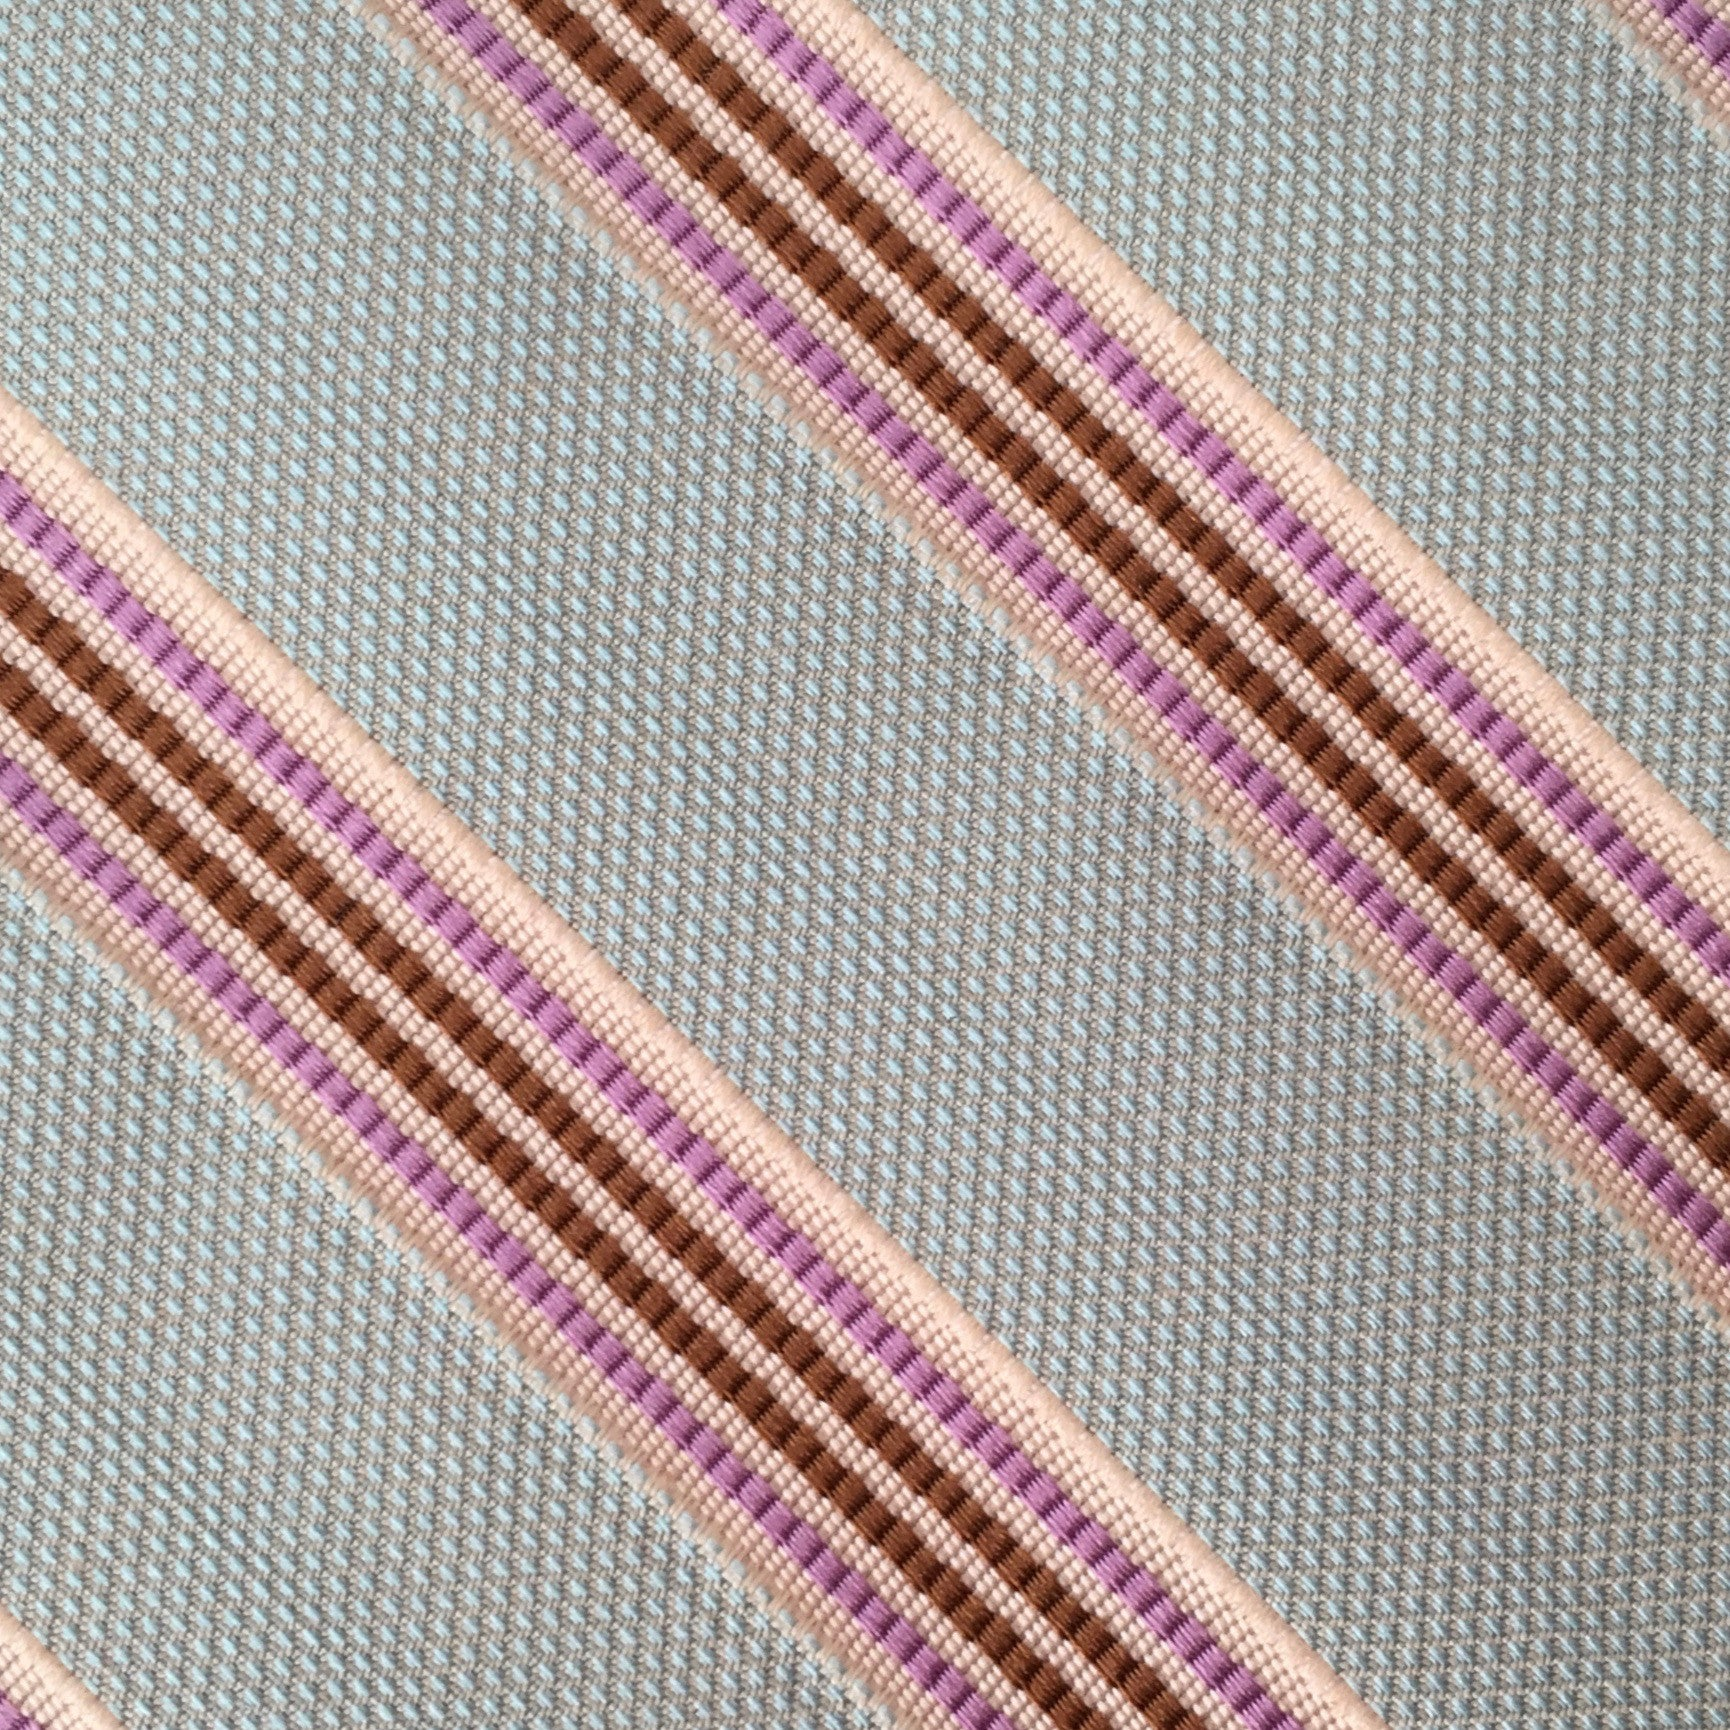 Woven Stripe Lt. Blue with Purple/Brown Thin Stripe